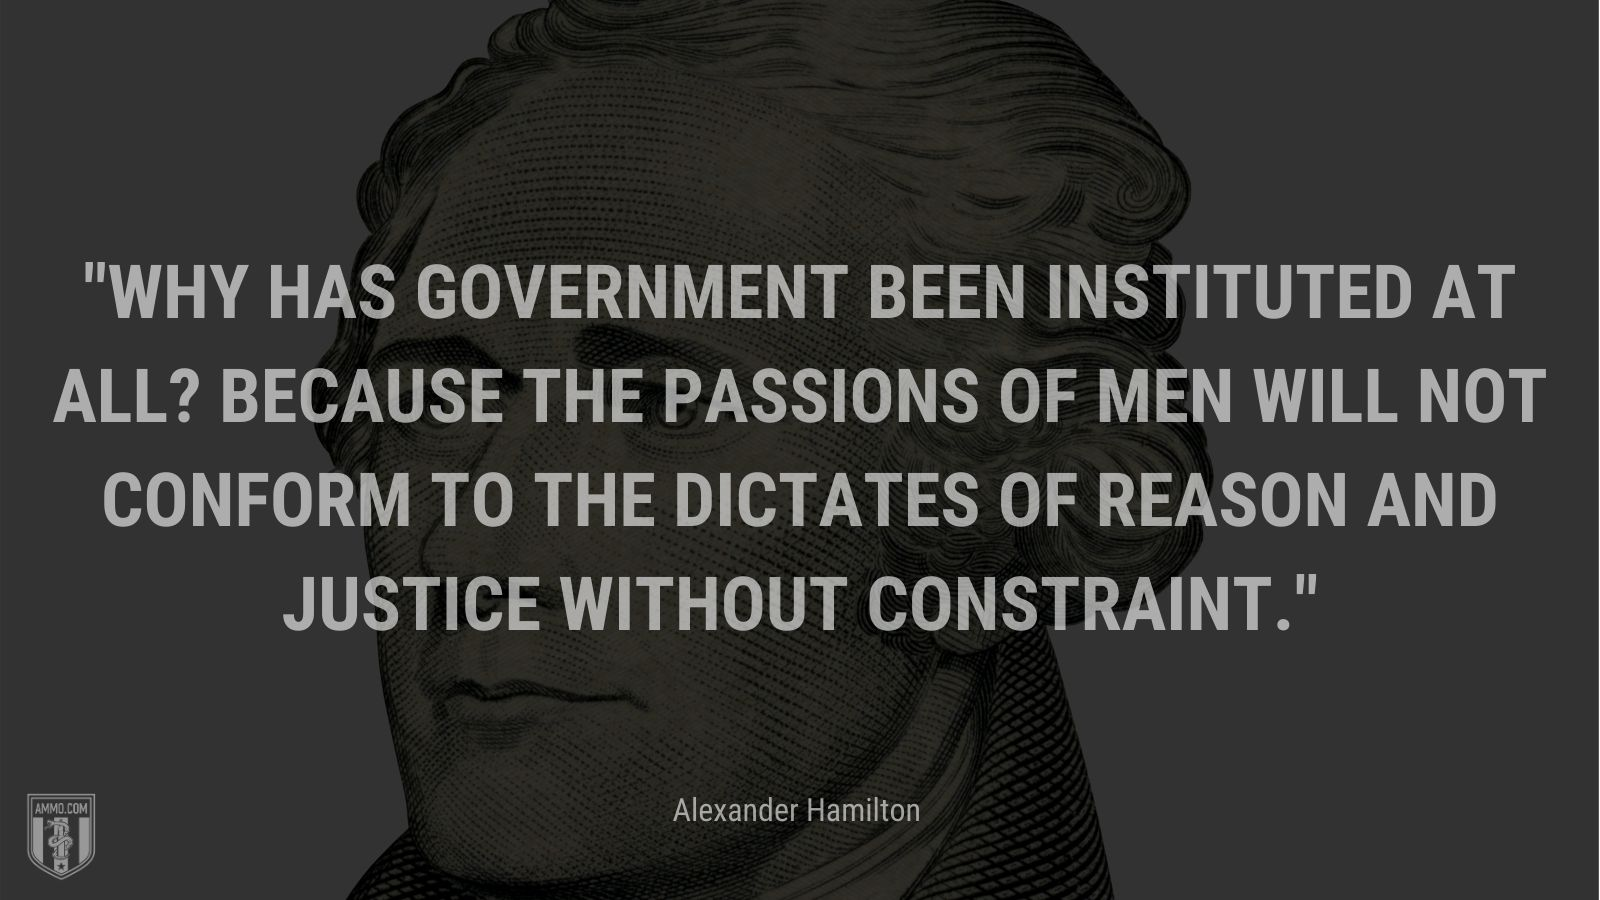 """""""Why has government been instituted at all? Because the passions of men will not conform to the dictates of reason and justice without constraint."""" - Alexander Hamilton"""